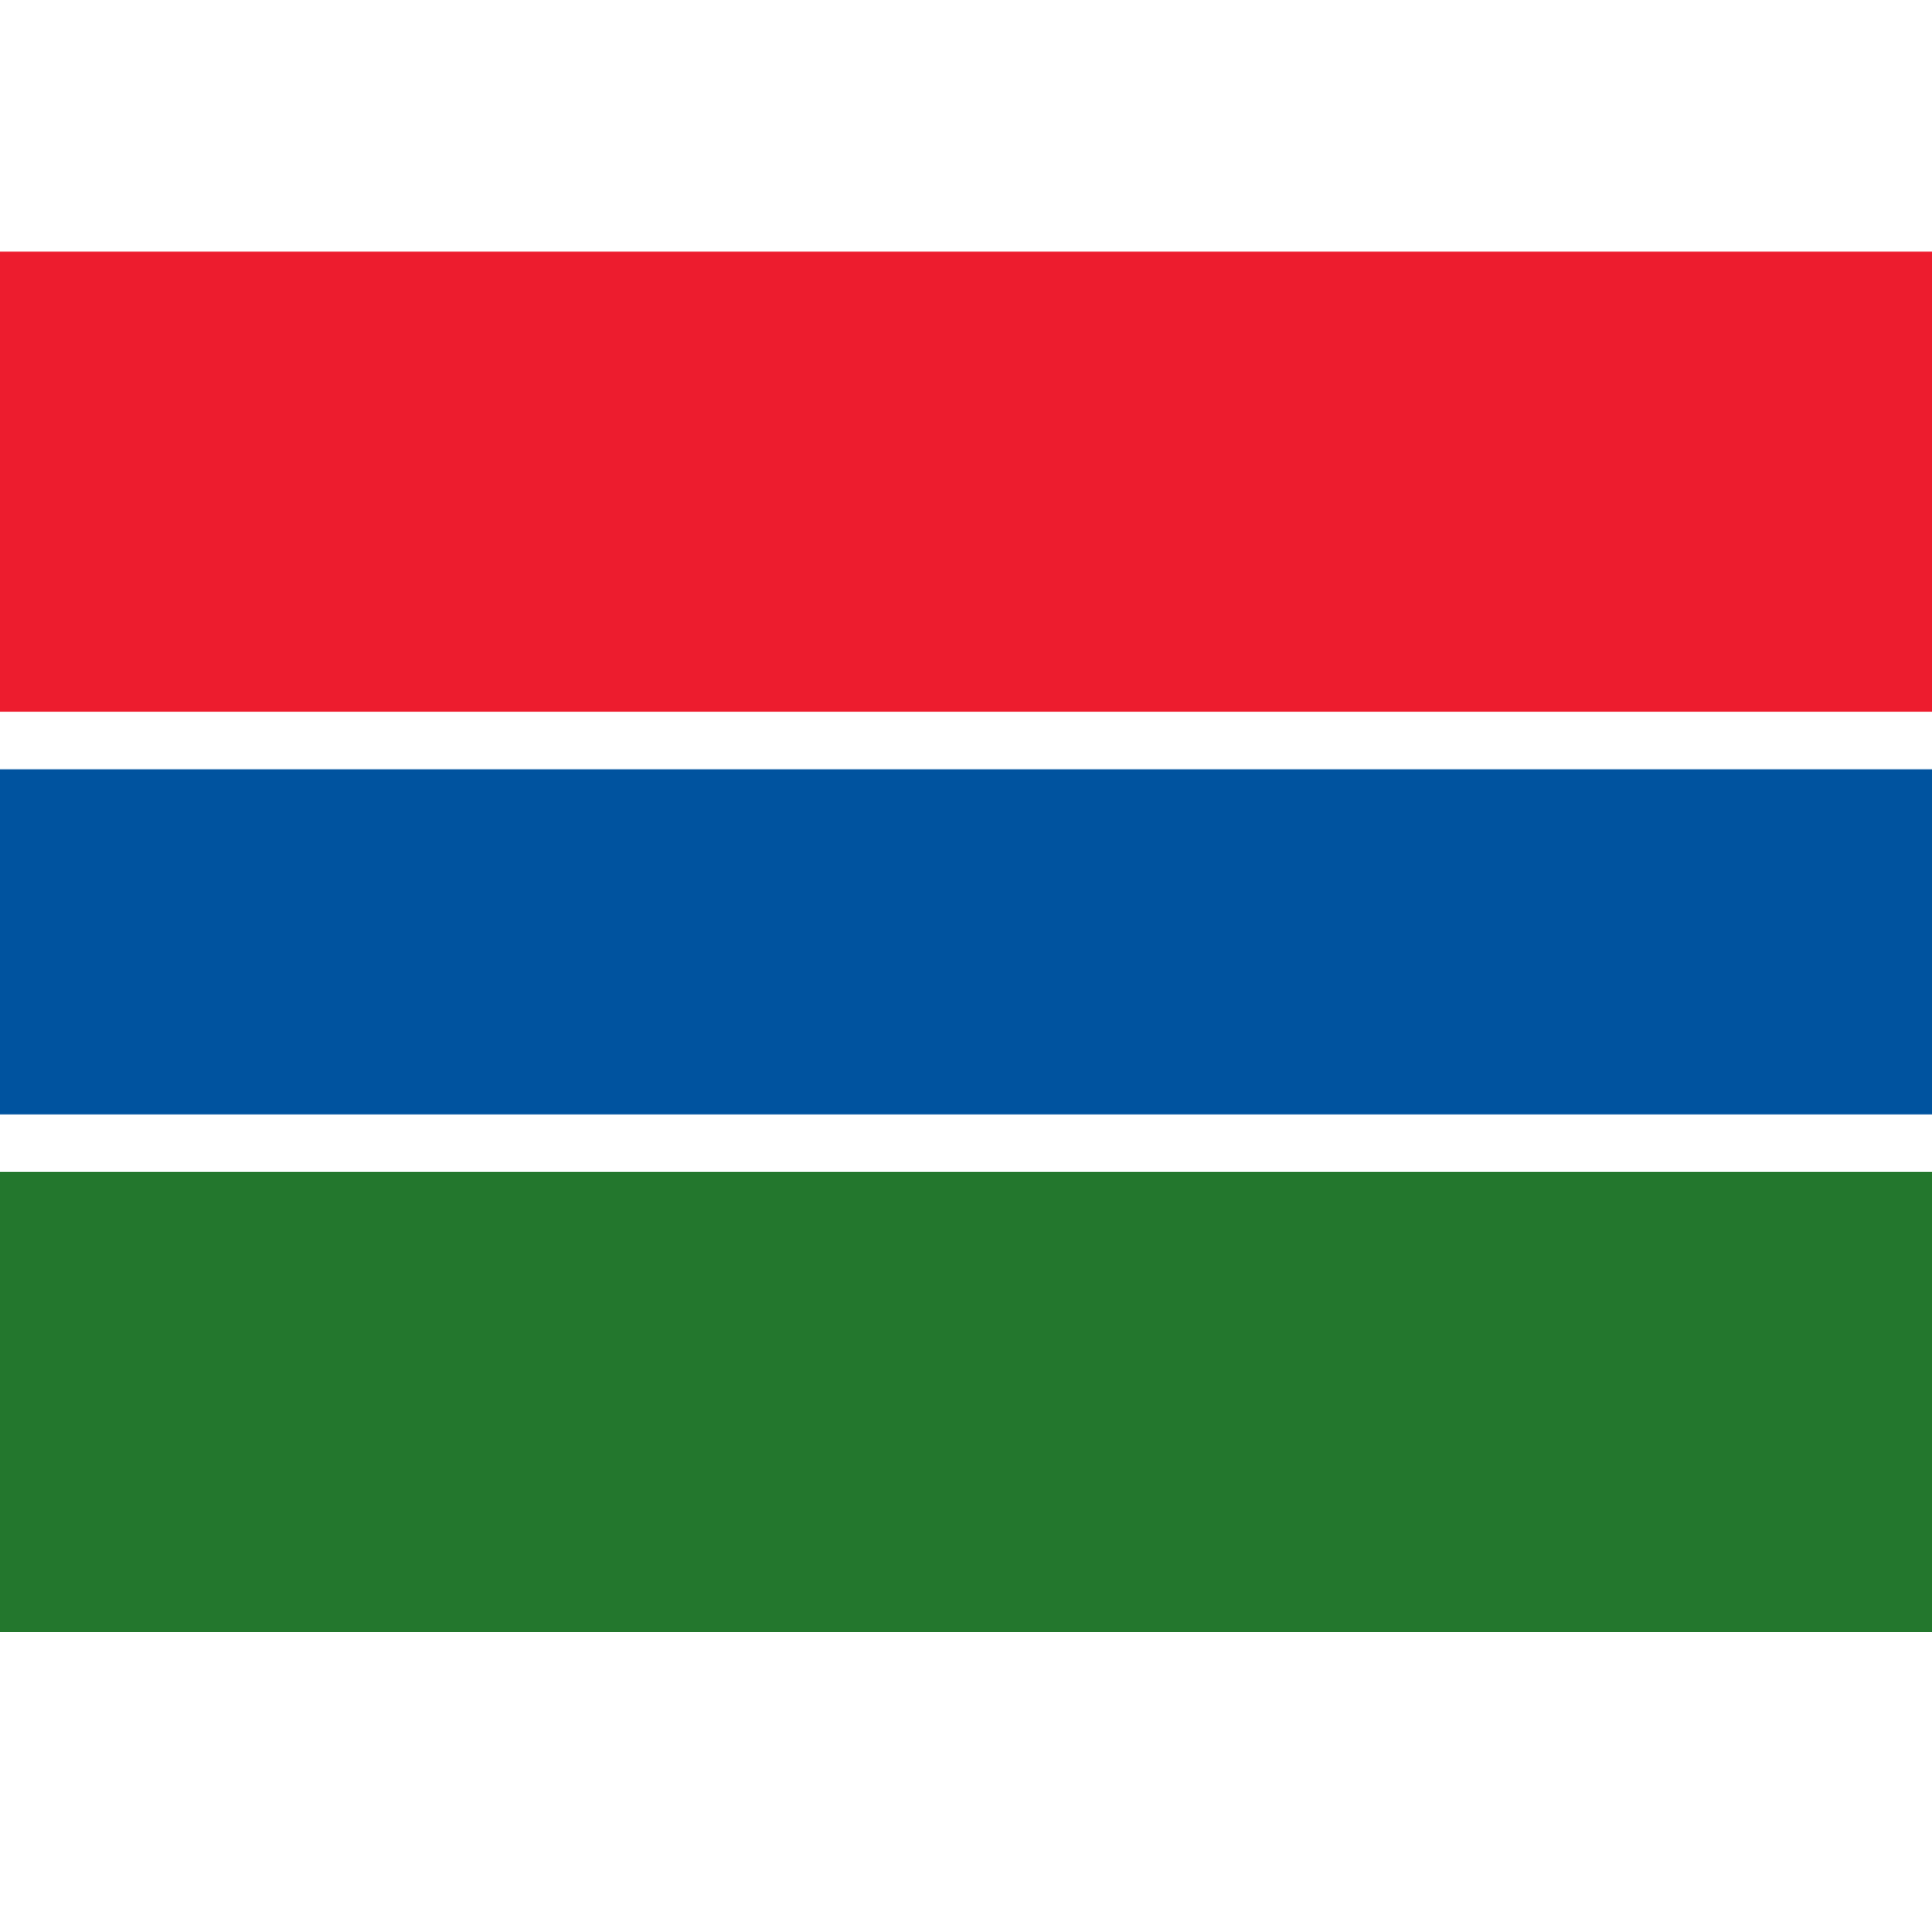 gambia flag | Gambia Flag Flags of the World openclipart.org commons.wikimedia ...